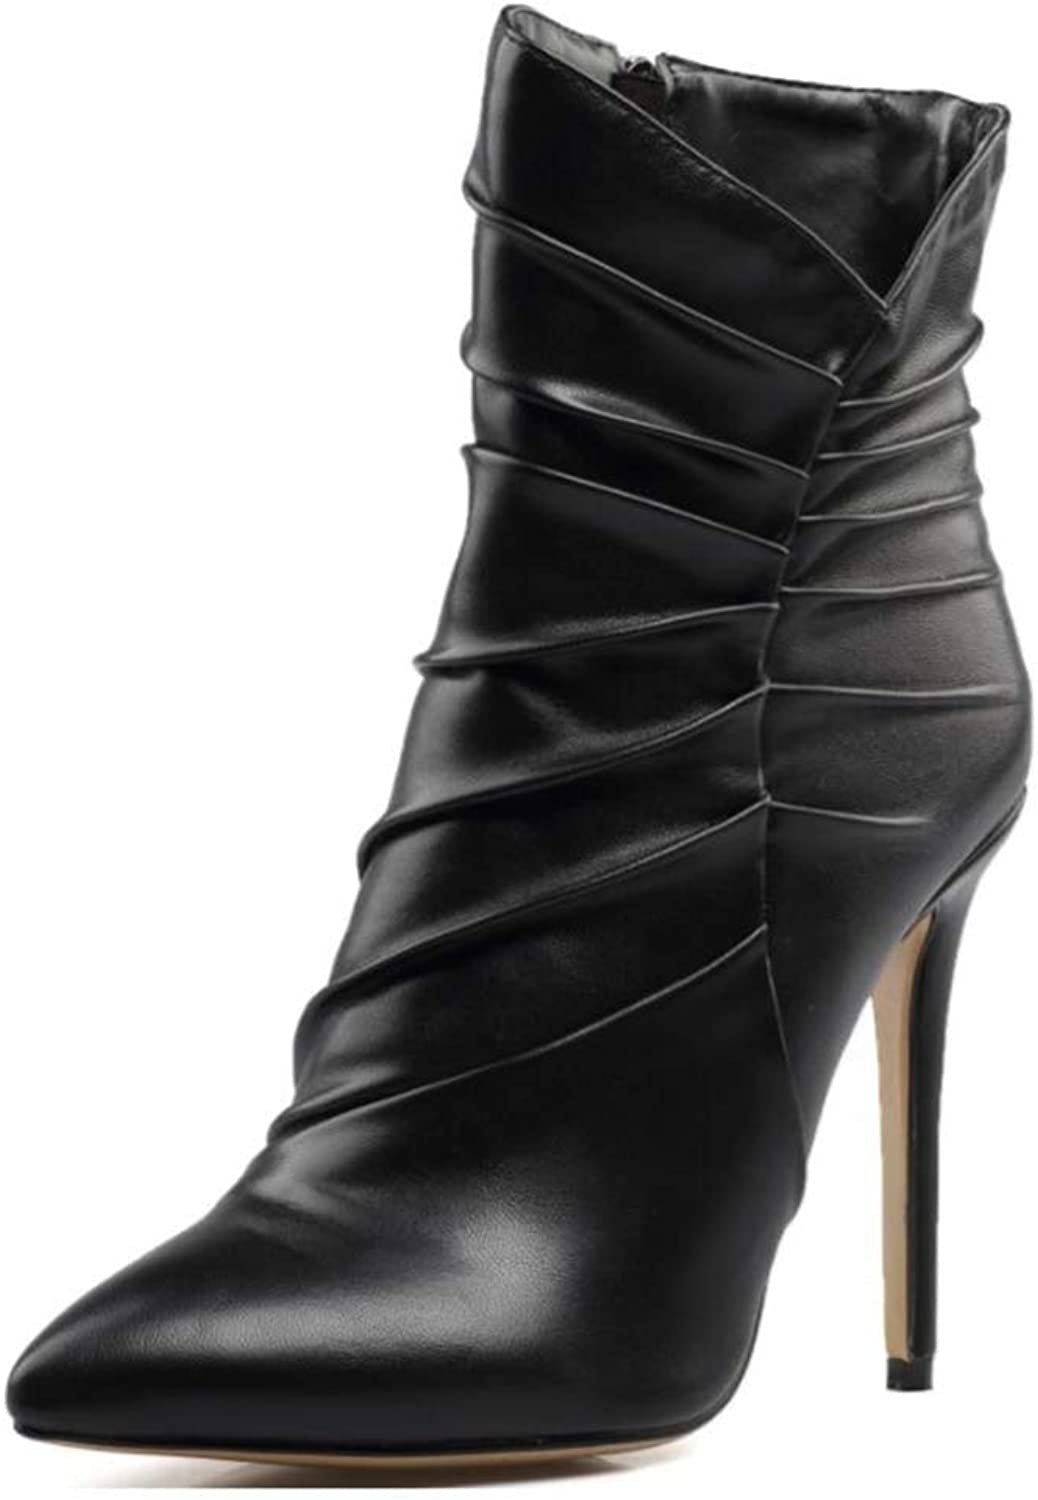 Shiney Women's Pointed Toe Black Artificial PU High-Heeled Pleated Ankle Boots Stiletto Heels Holiday Party